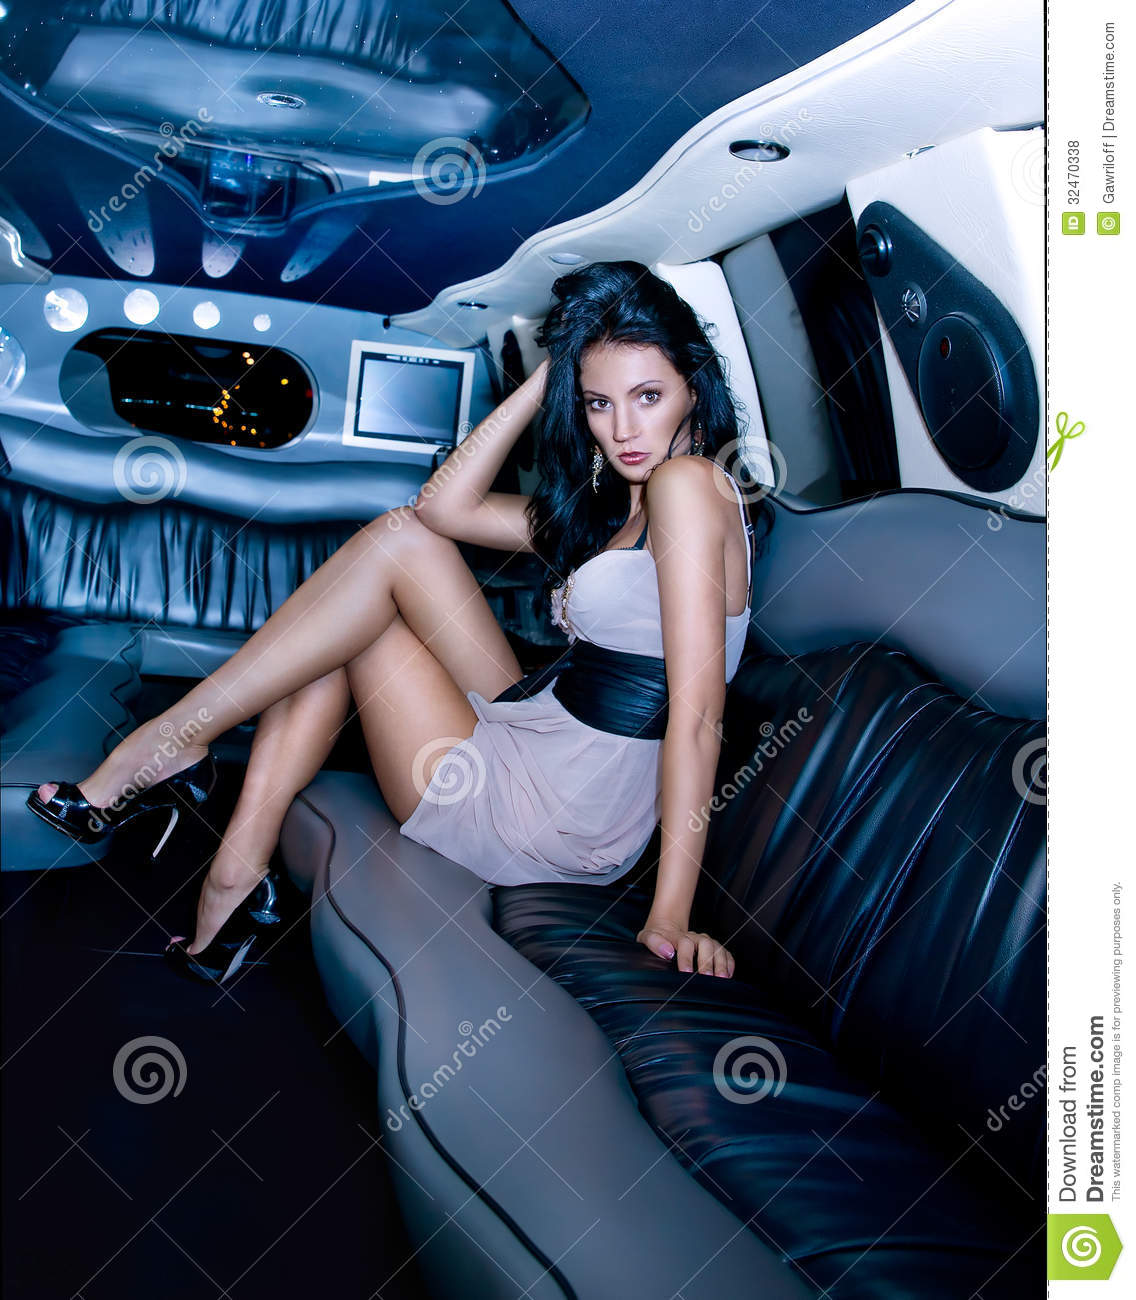 Sexy women in limo